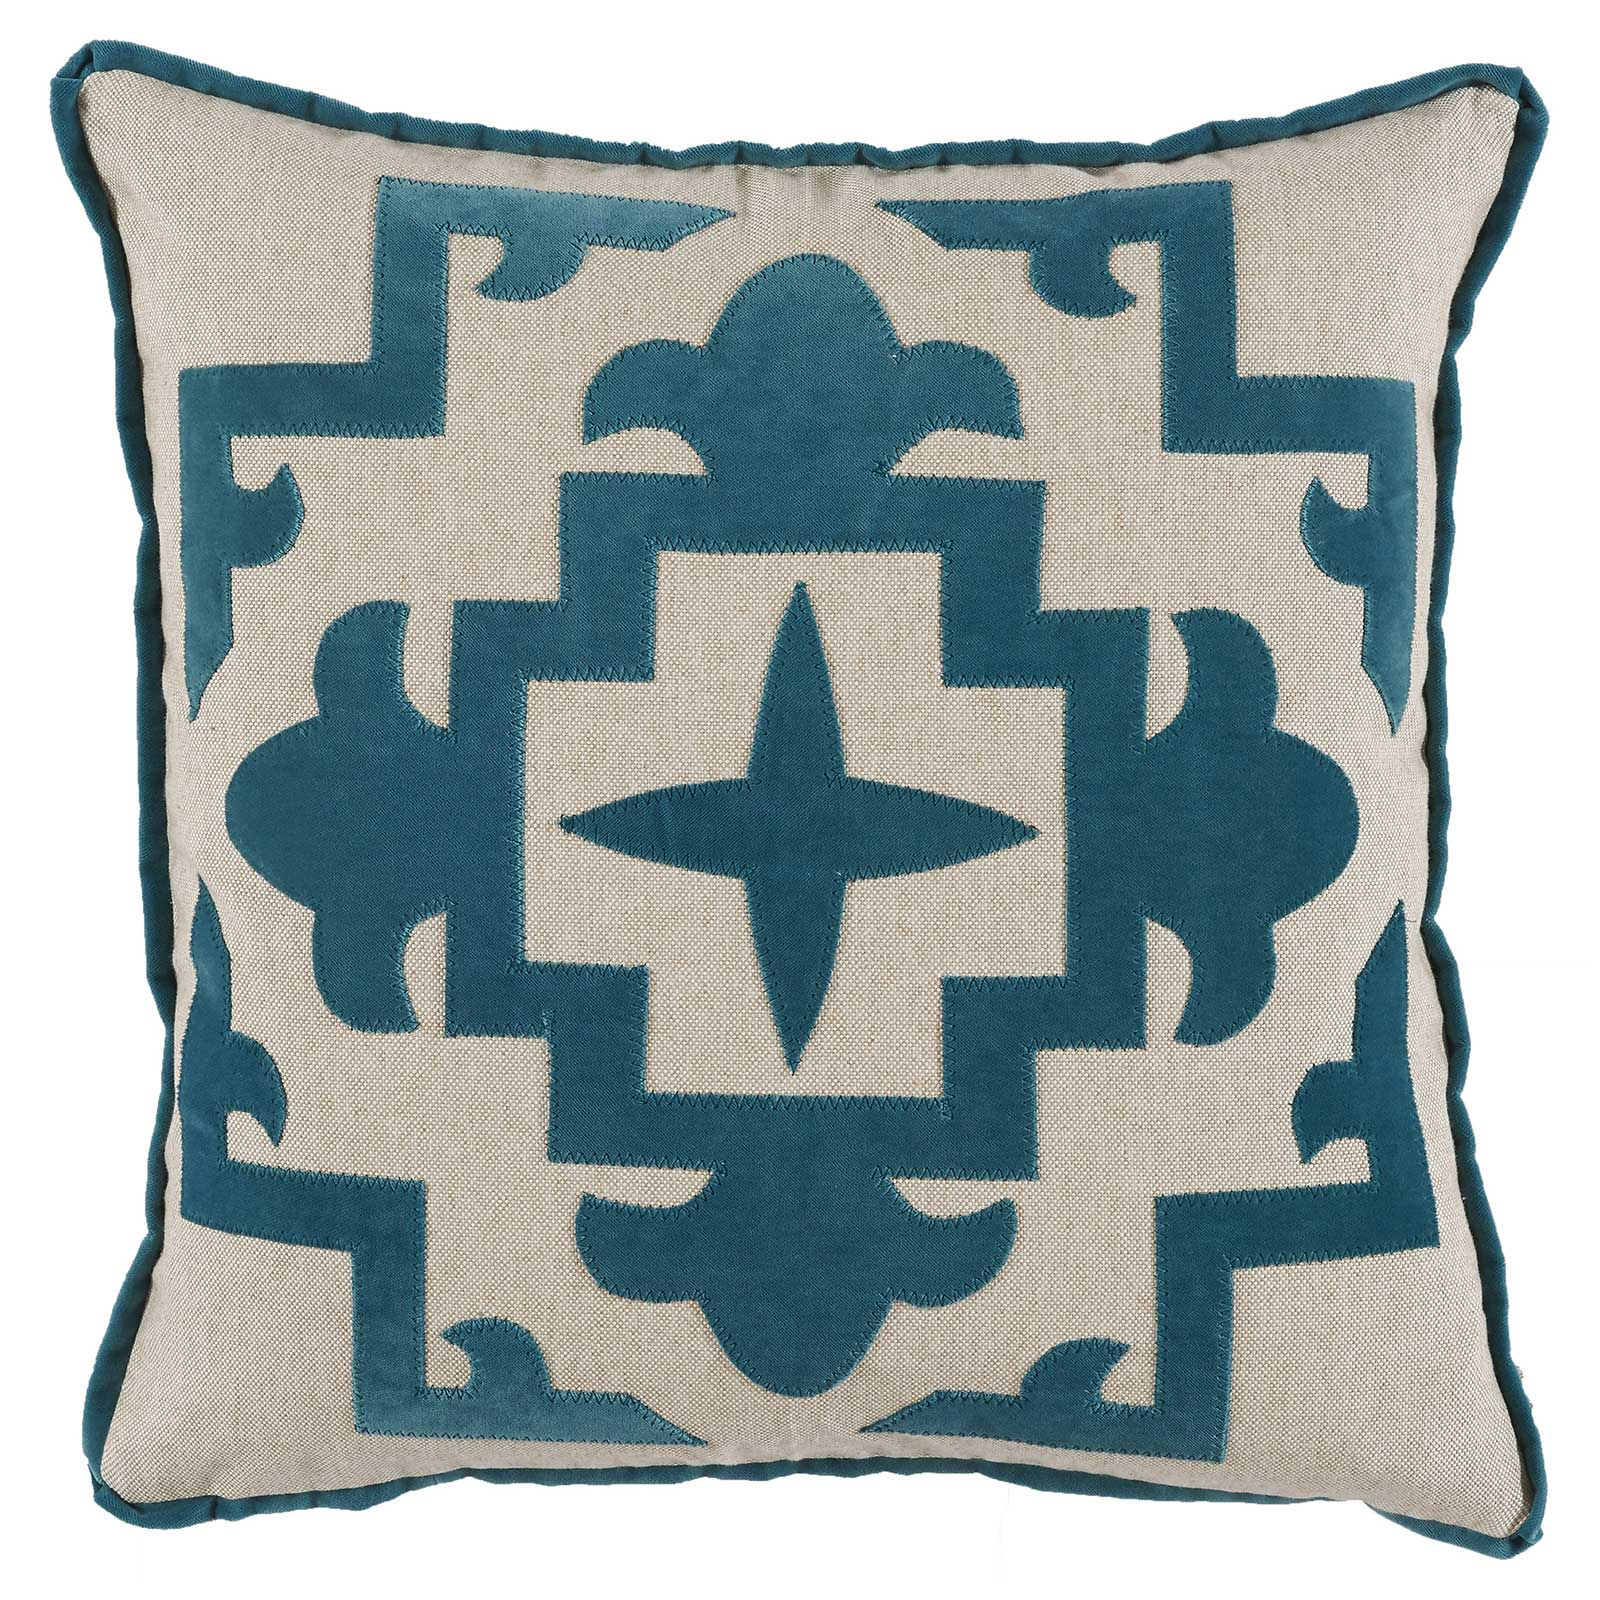 Libby Modern Classic Blue Velvet Medallion Pillow - 22x22